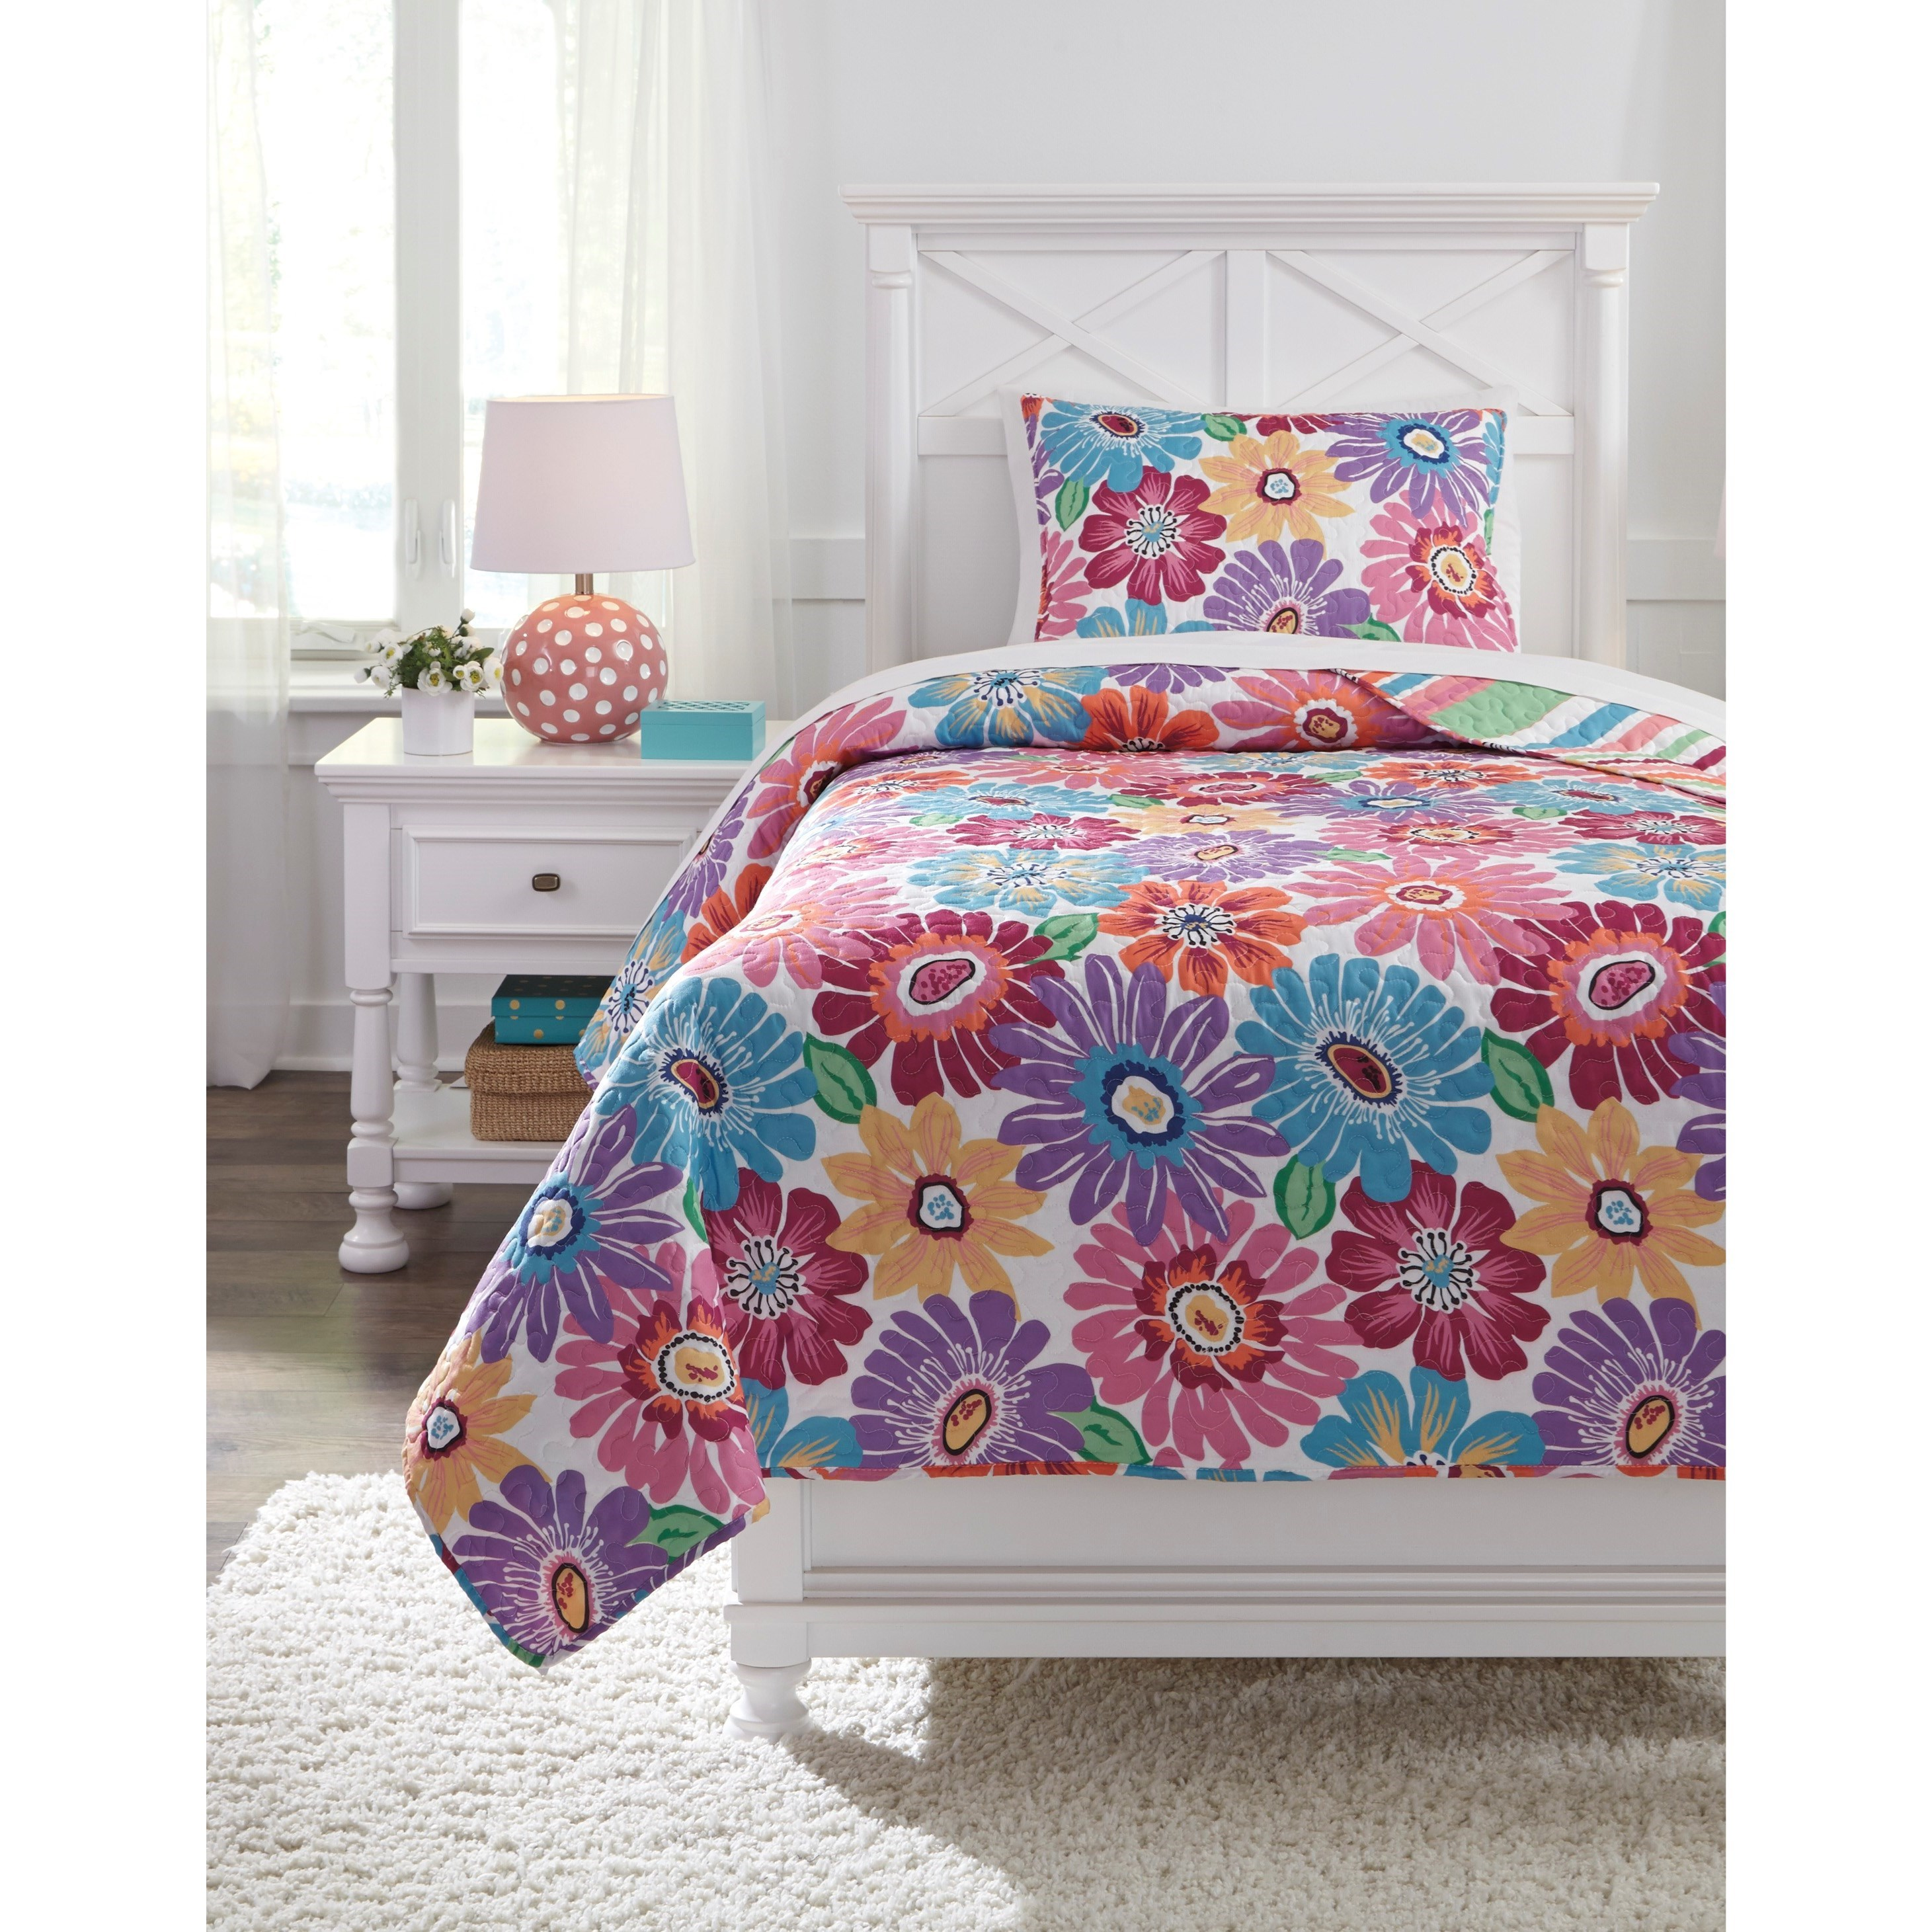 Bedding Sets Twin Alexei Quilt Set by Signature Design at Fisher Home Furnishings